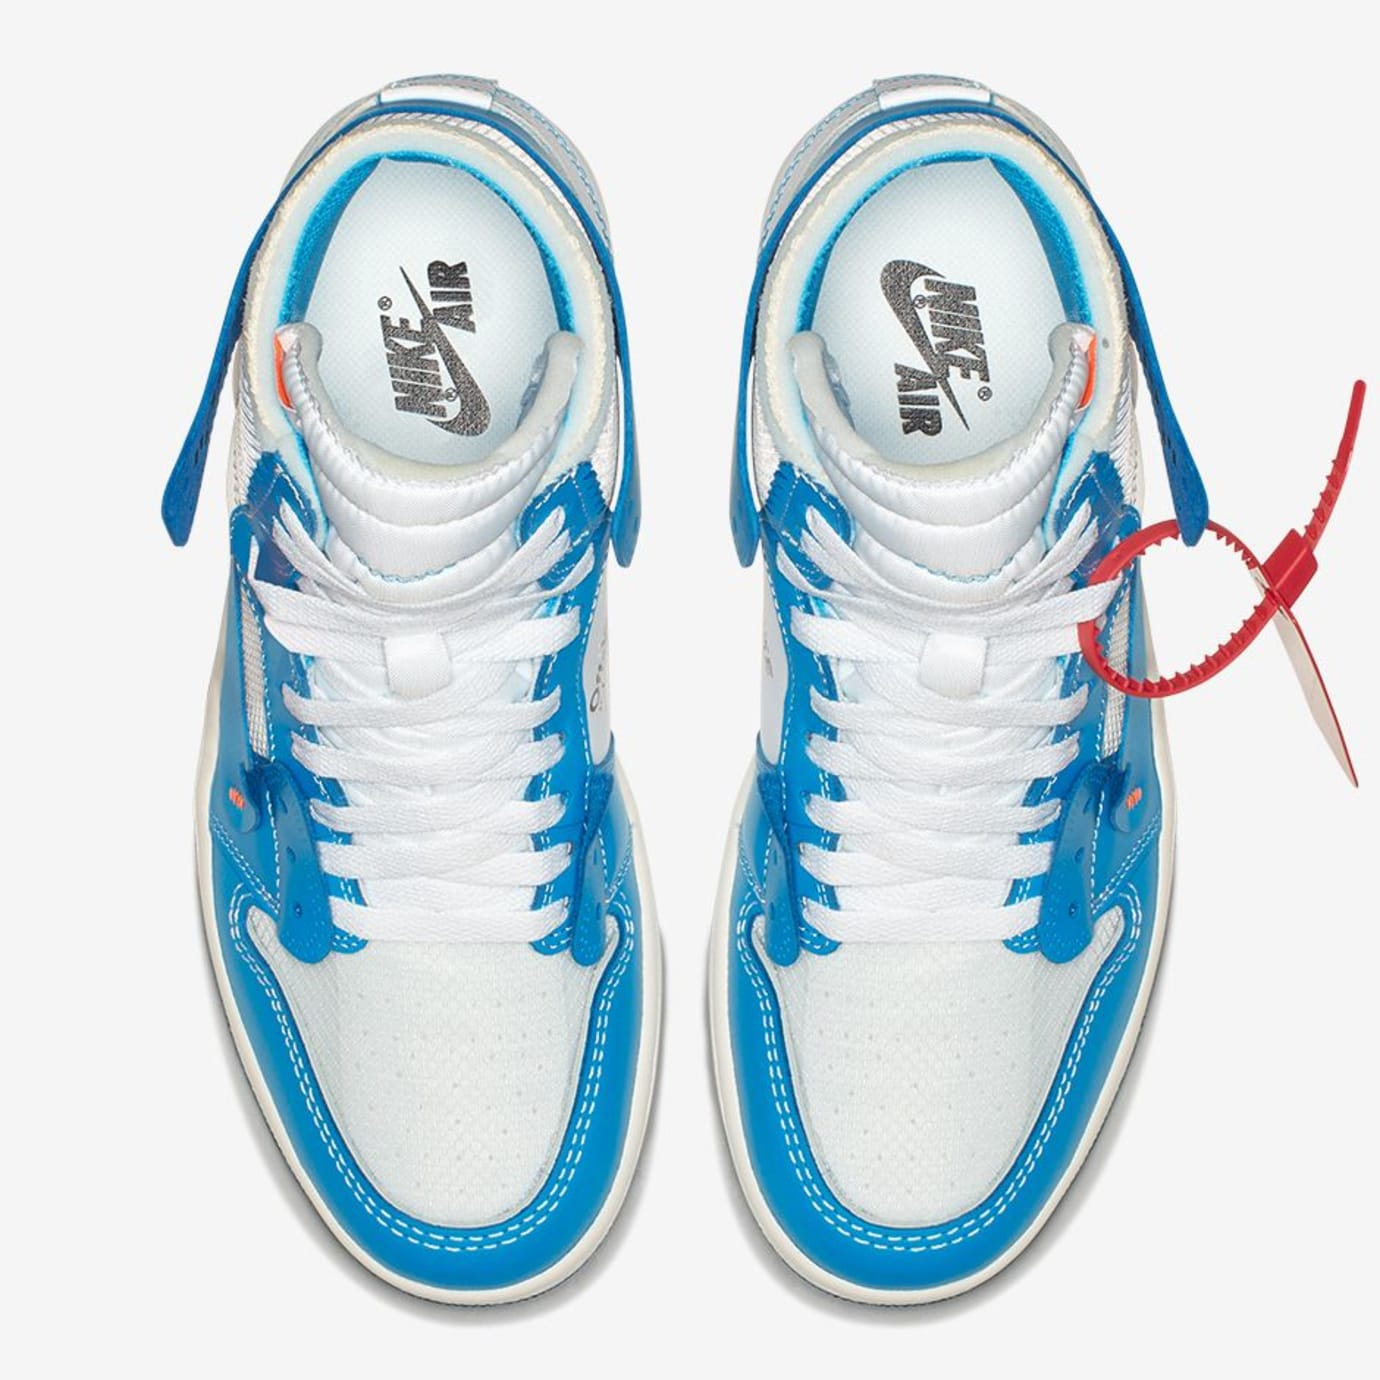 f551d6eaa6f7 Image via Nike Off-White x Air Jordan 1 UNC Release Date AQ0818-148 Top